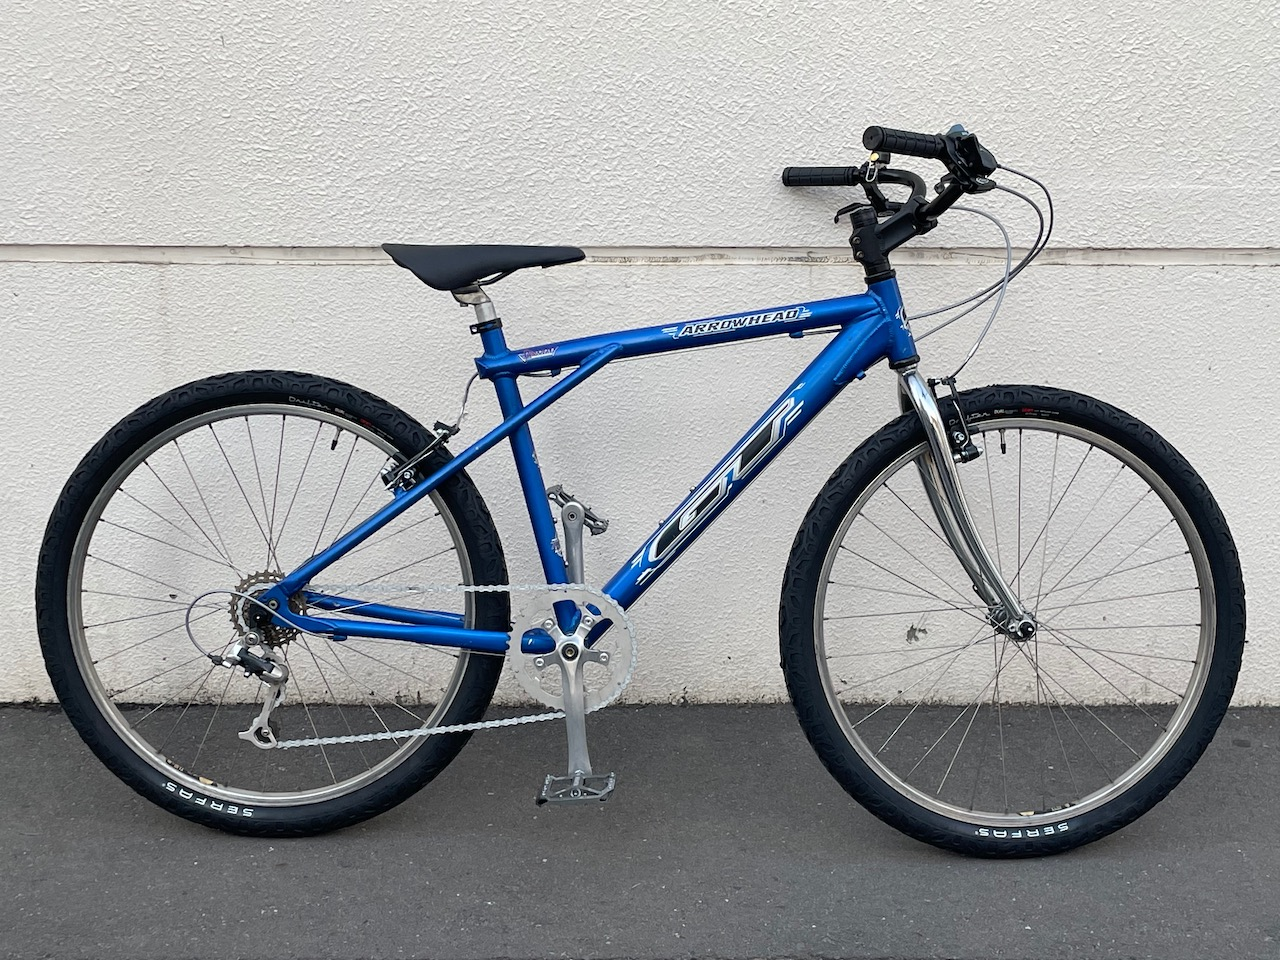 GT Commuter bike